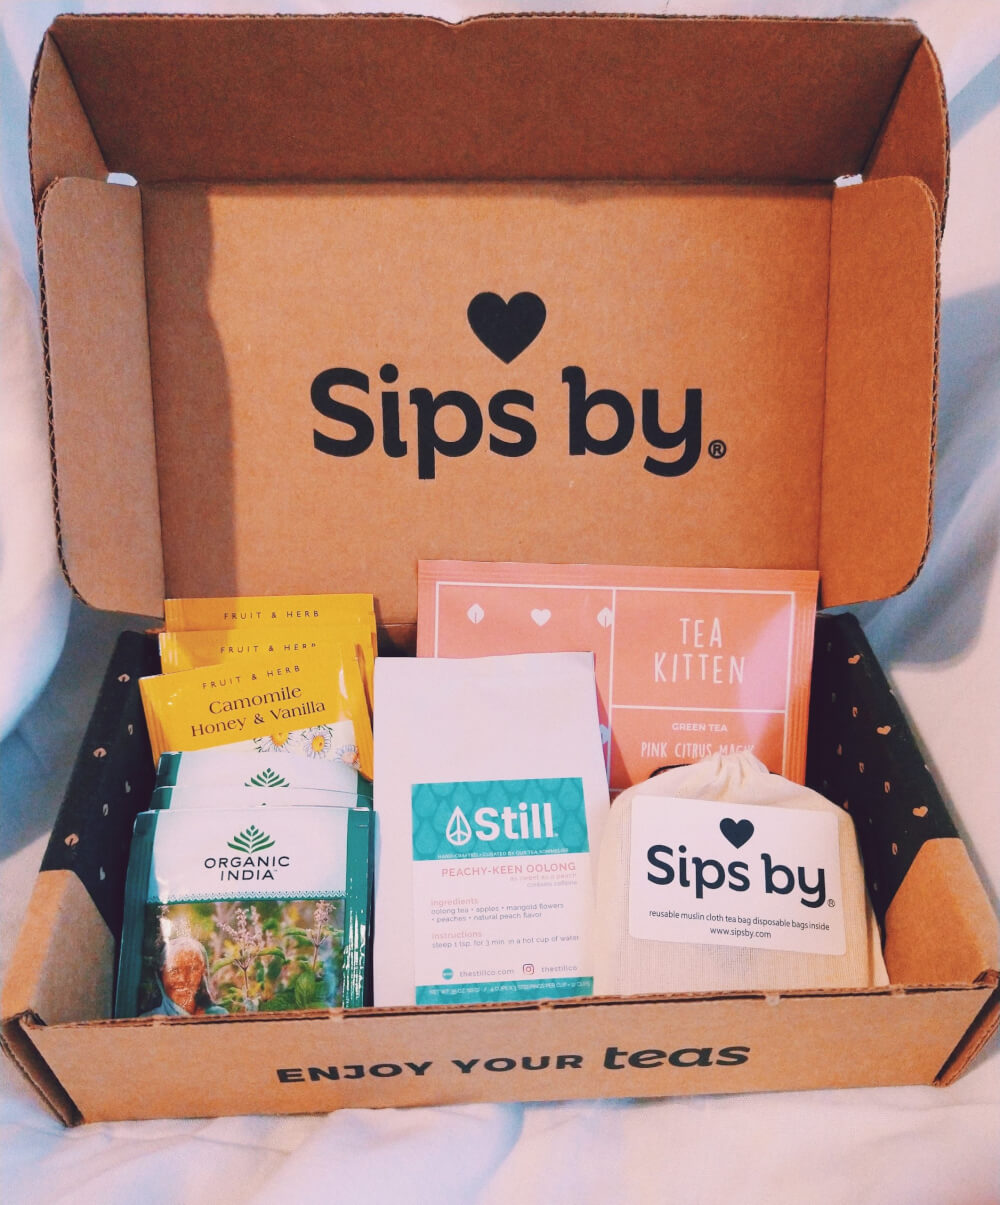 Sips by box displaying teas